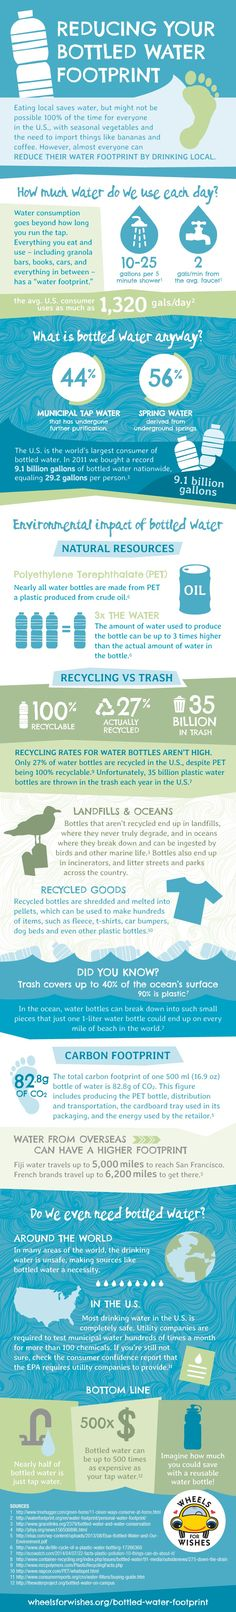 Why you should stop using Bottled Water Consumption? Unfortunately, only 27 percent of plastic water bottles are recycled in the United States, and they are 100 percent recyclable. Each year, 35 billion plastic water bottles are thrown in the trash in the United States alone. The total carbon footprint of one 500 ml (16.9 oz) bottle of water is 828g of carbon dioxide.